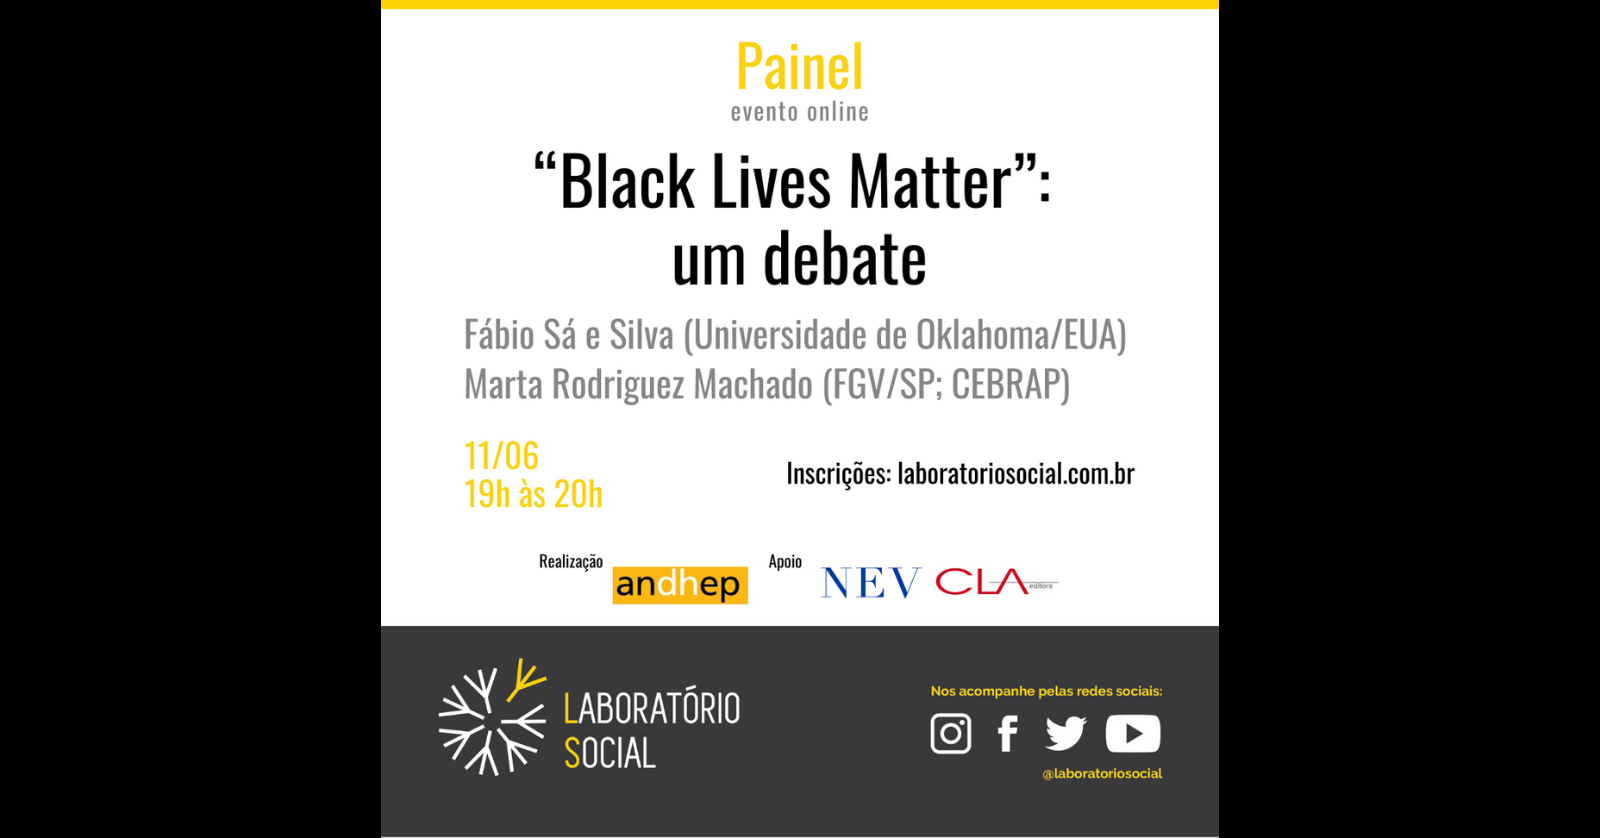 Black Lives Matter: um debate